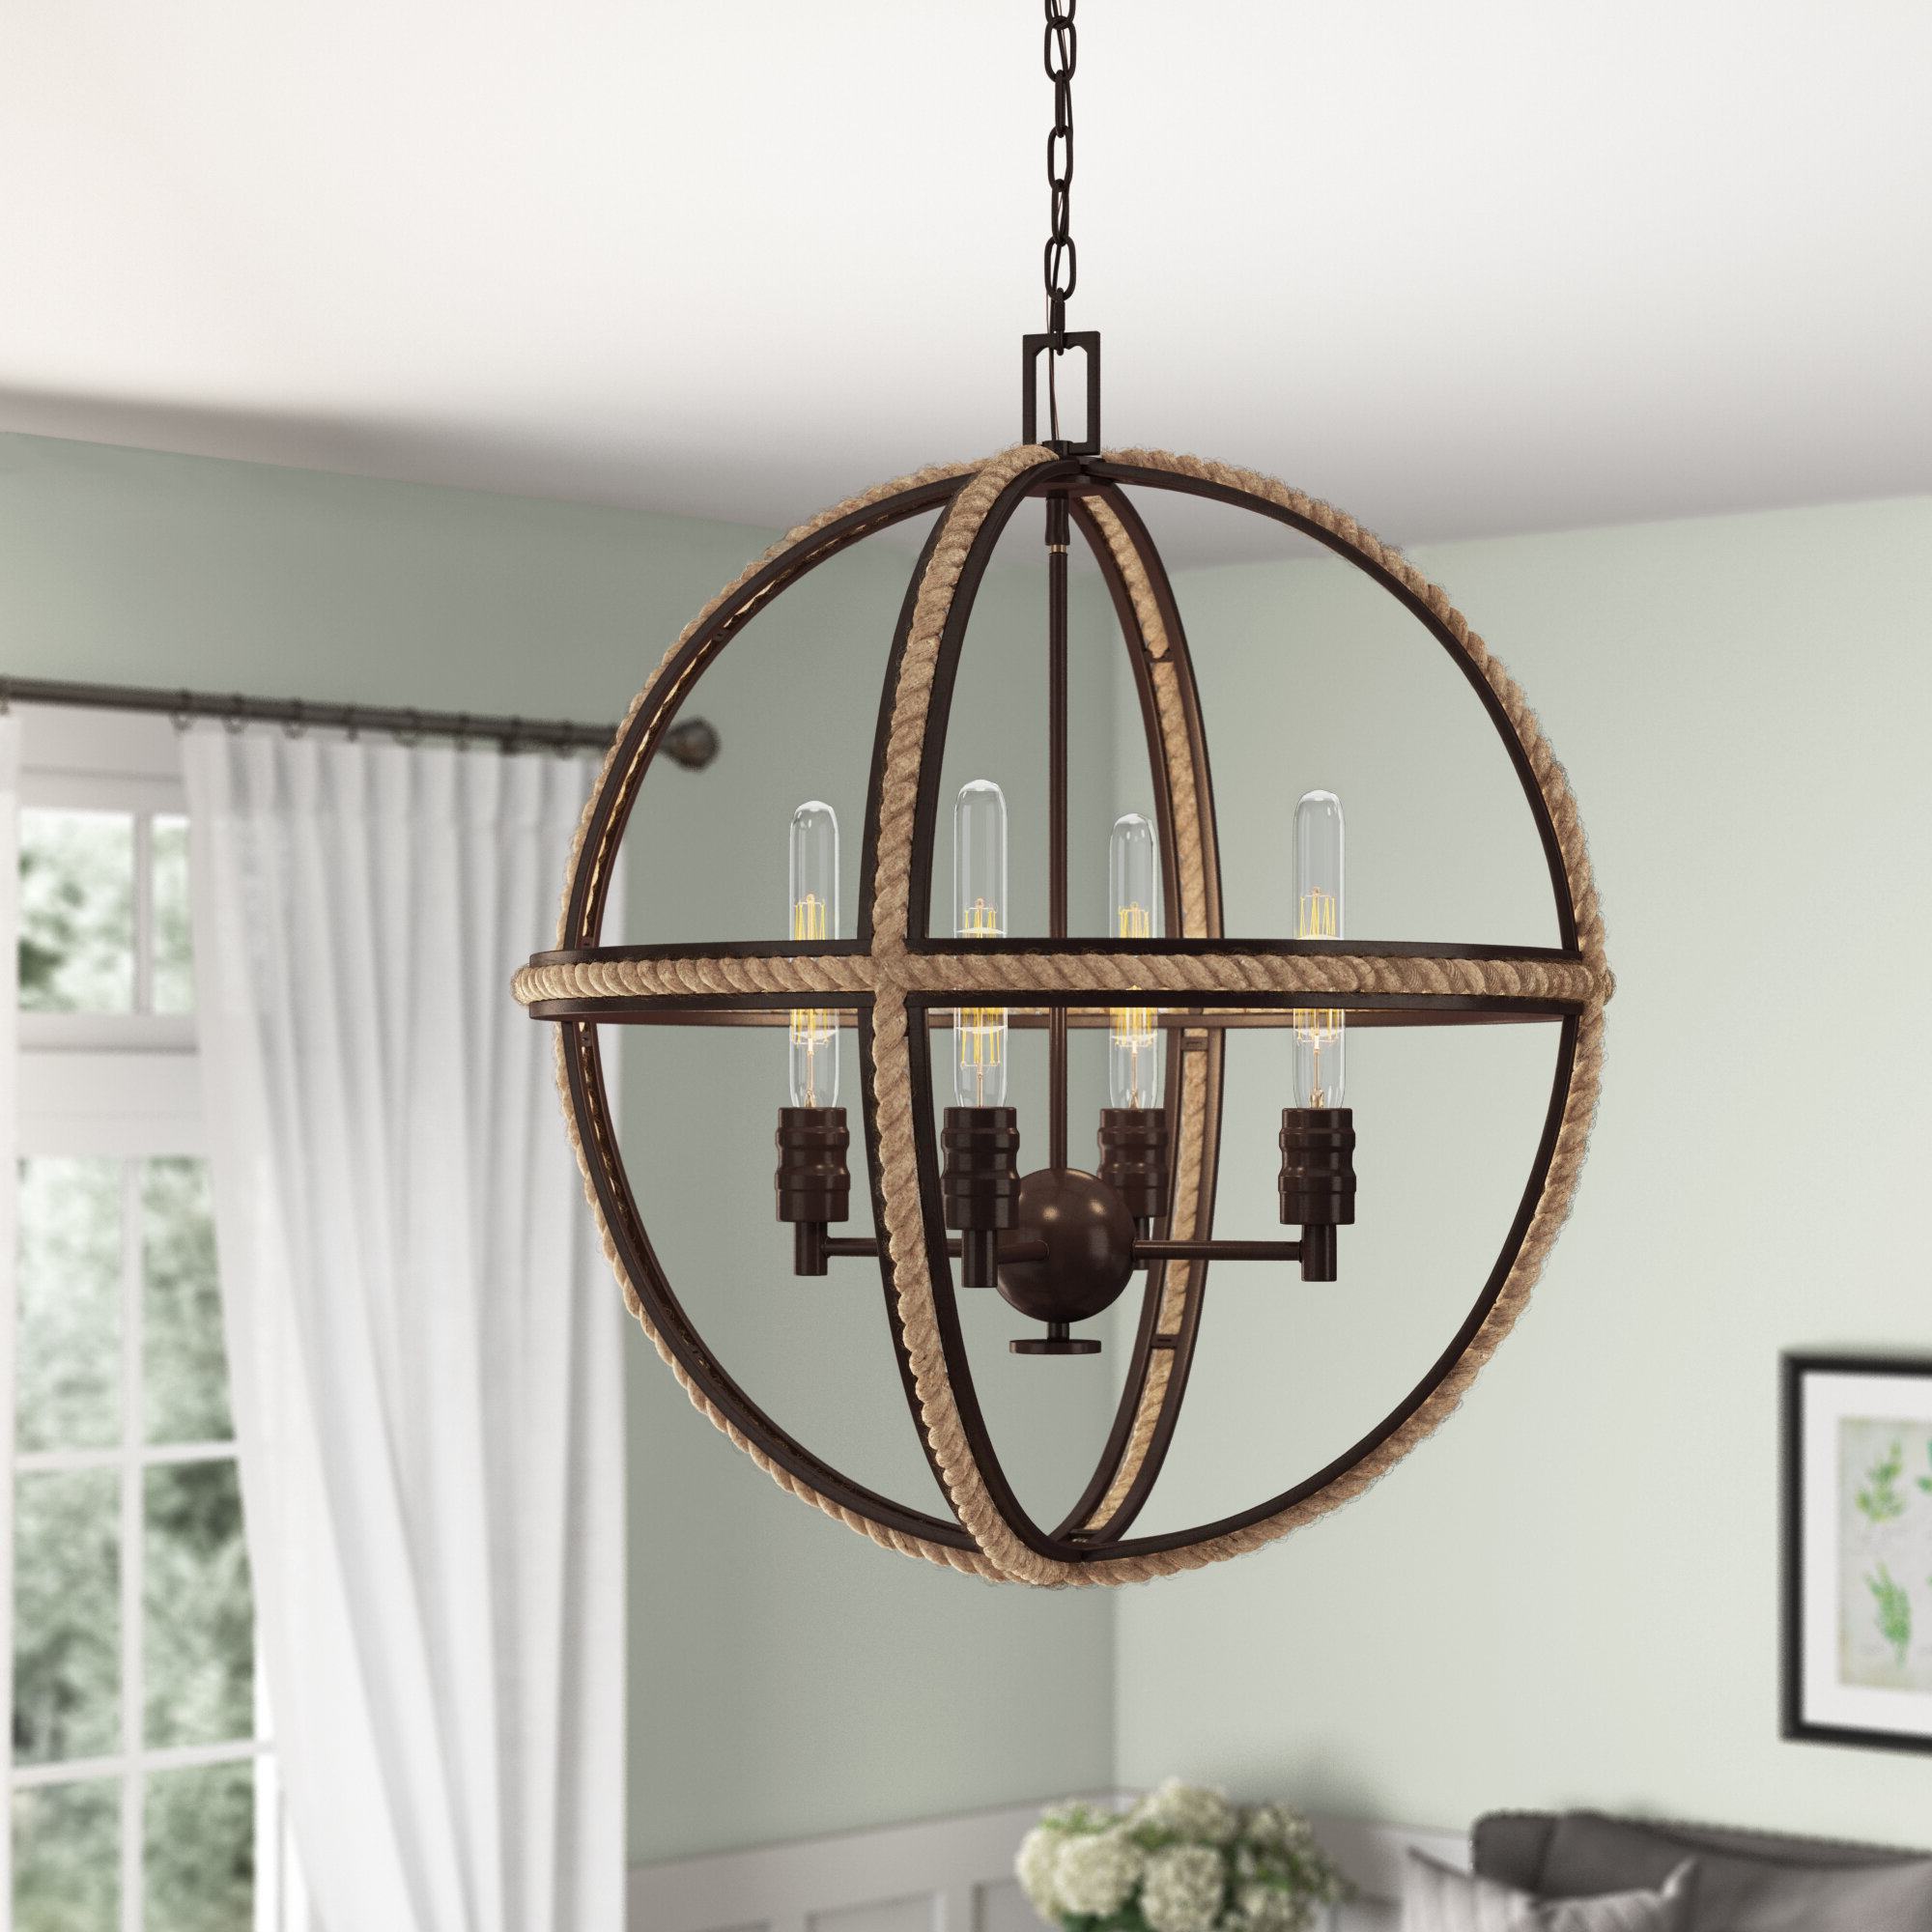 Kennett 4 Light Globe Chandelier Intended For Newest Ricciardo 4 Light Globe Chandeliers (Gallery 5 of 25)